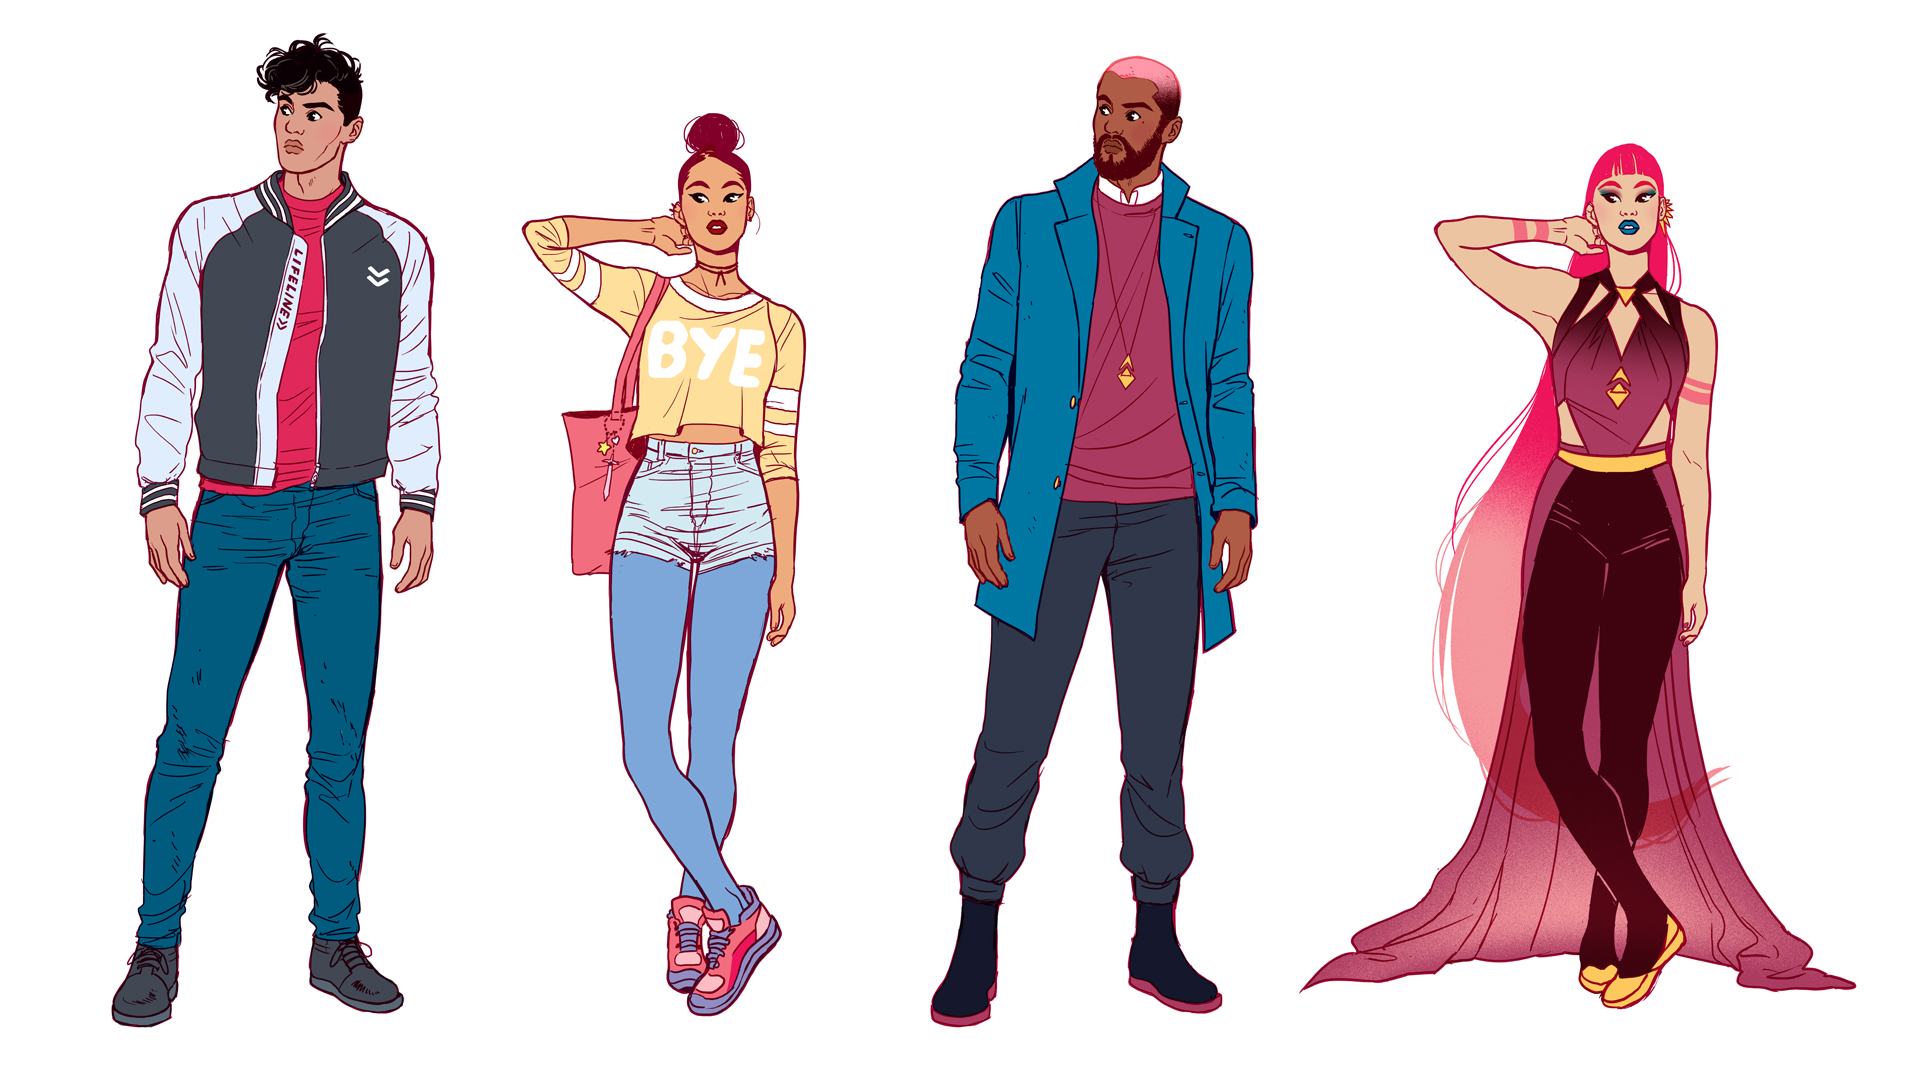 Character design experiment for a workshop I put on for SCAD students.